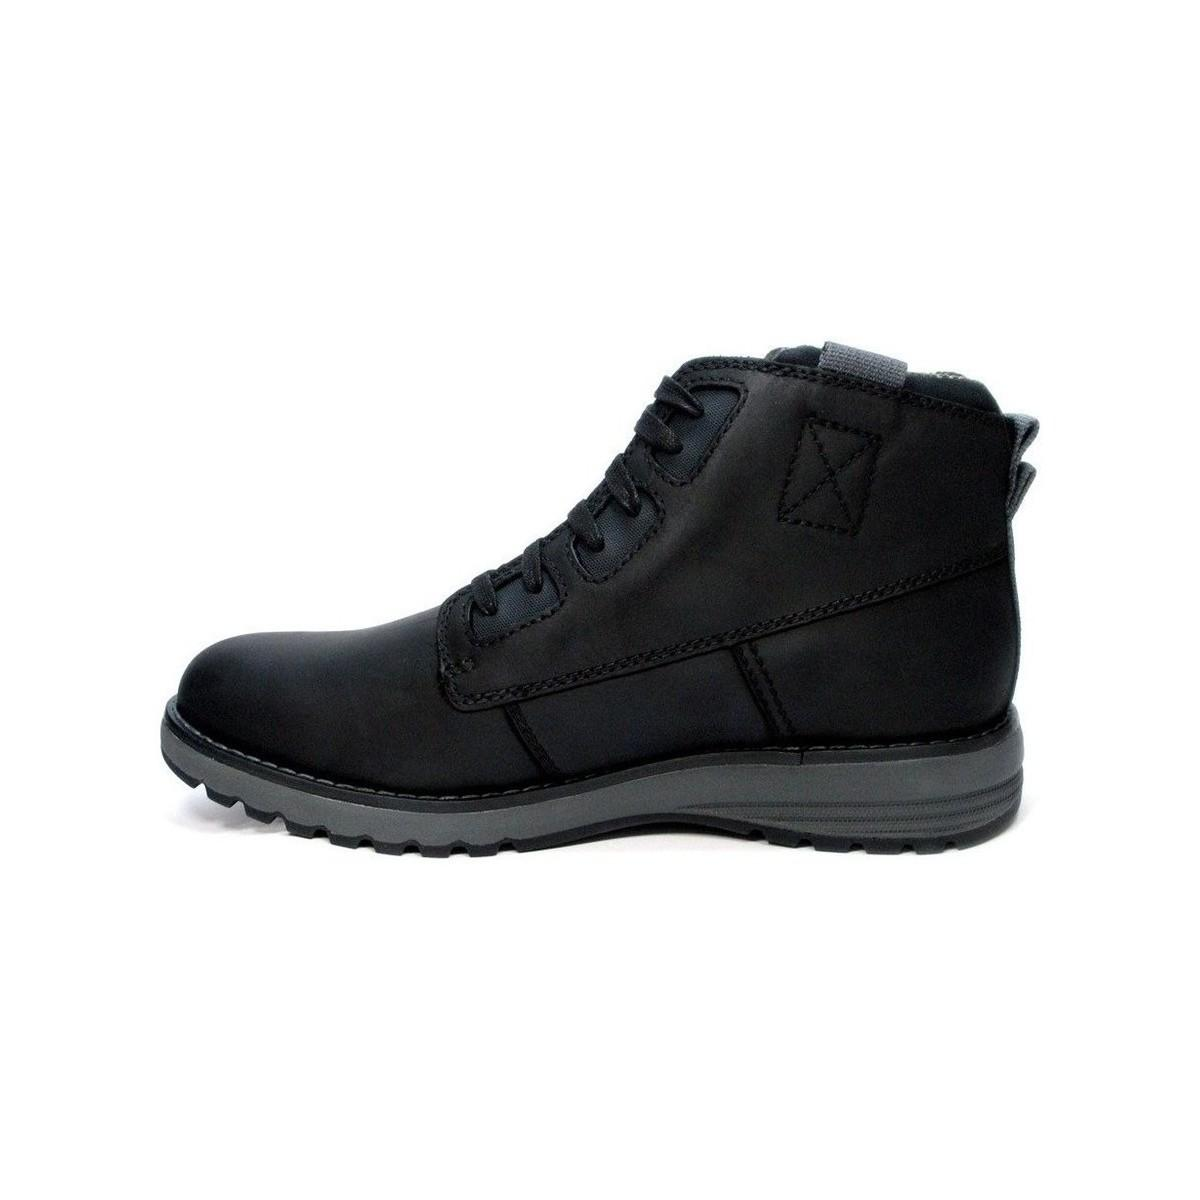 Caterpillar Cat Tate Wp Men's Shoes (high-top Trainers) In Black for Men - Save 38%